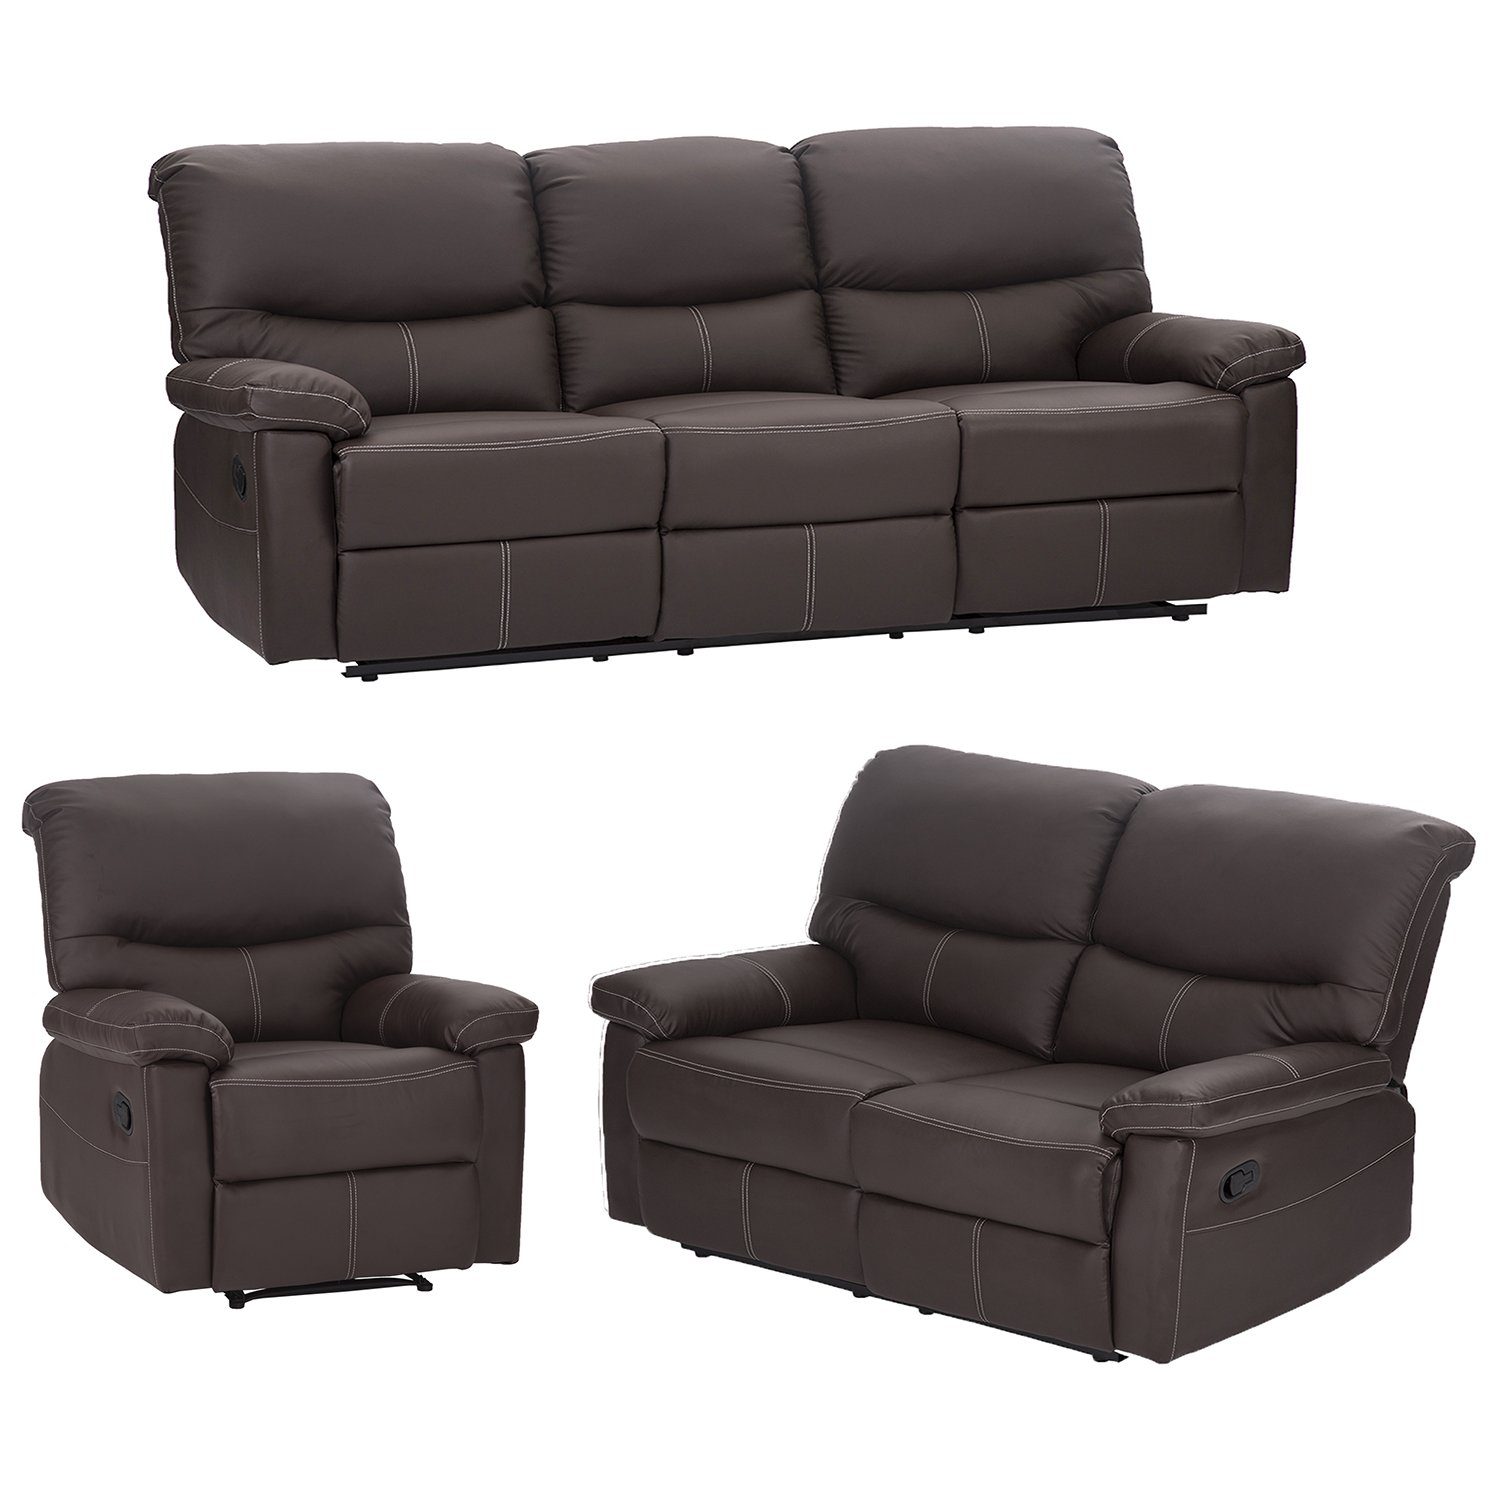 Cheap Leather Sofa Design Living Room Find Leather Sofa